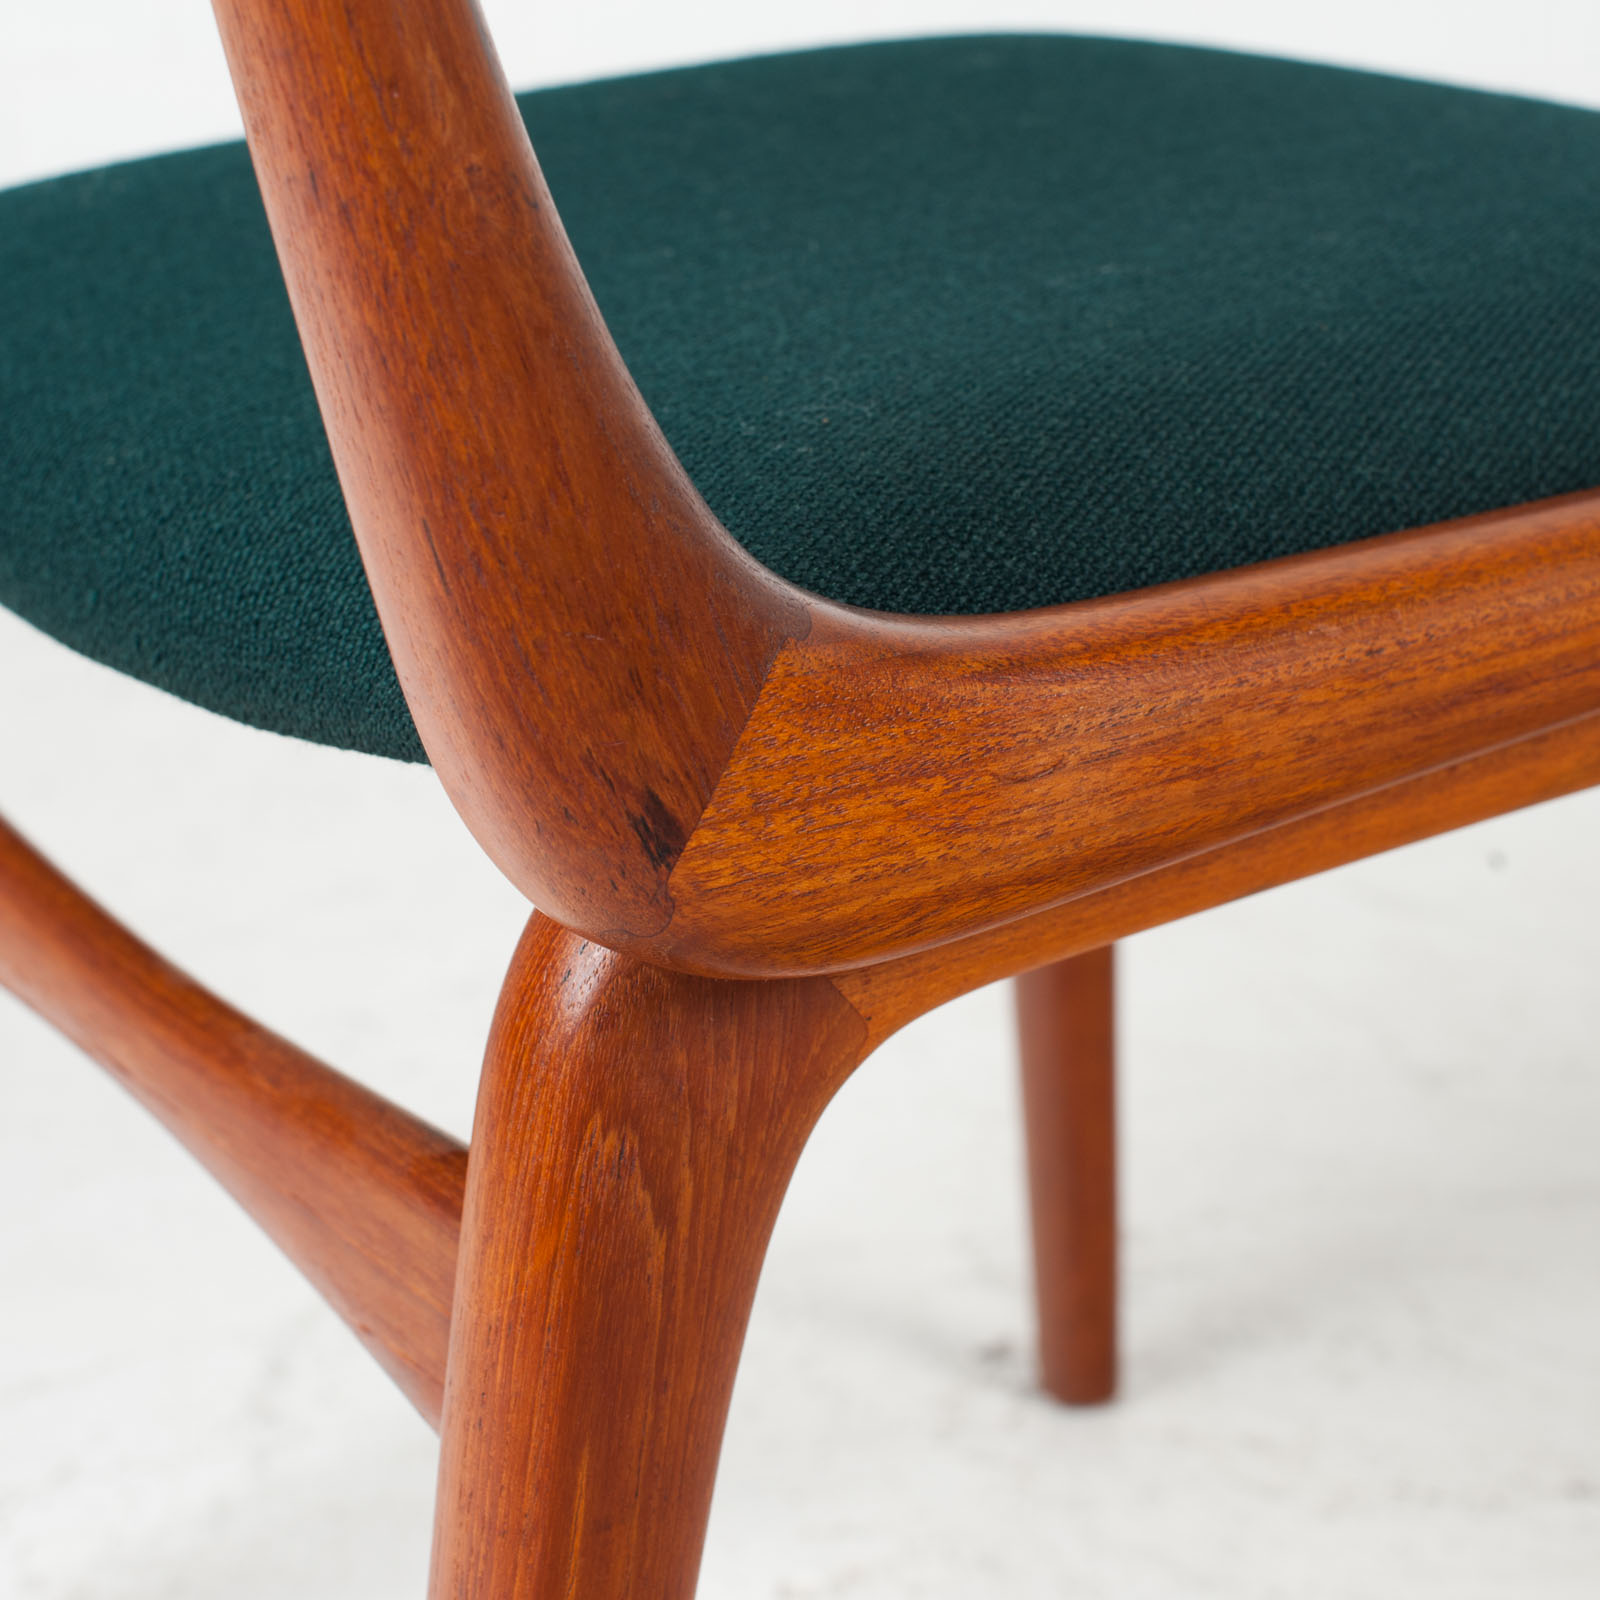 Set Of 6 Model 370 'boomerang' Dining Chair By Alfred Christensen In Teak For Slagelse Mobelfabrik 1950s Denmark 08